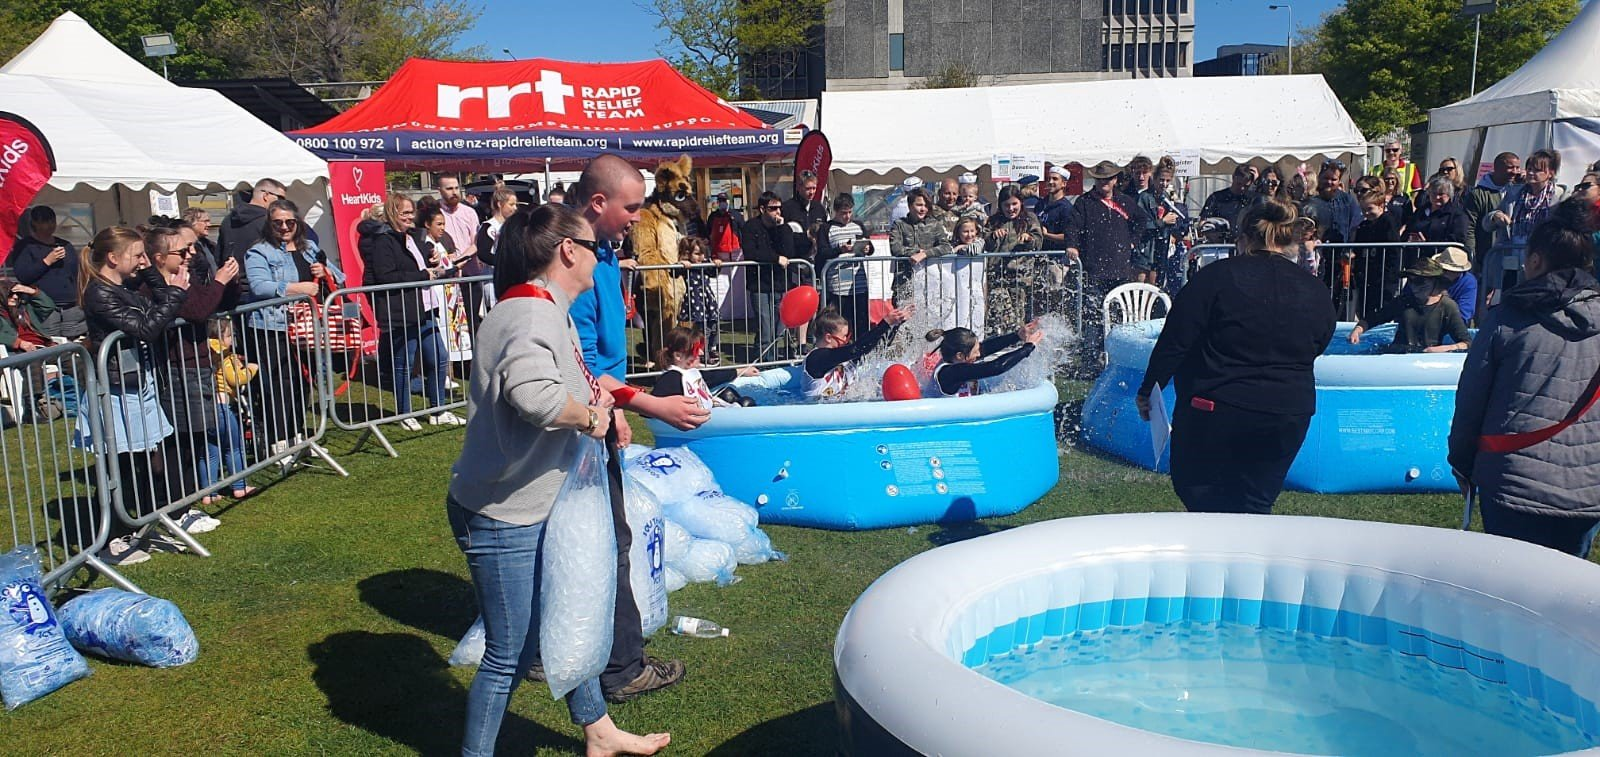 People in inflatable pool splashing with a crowd watching